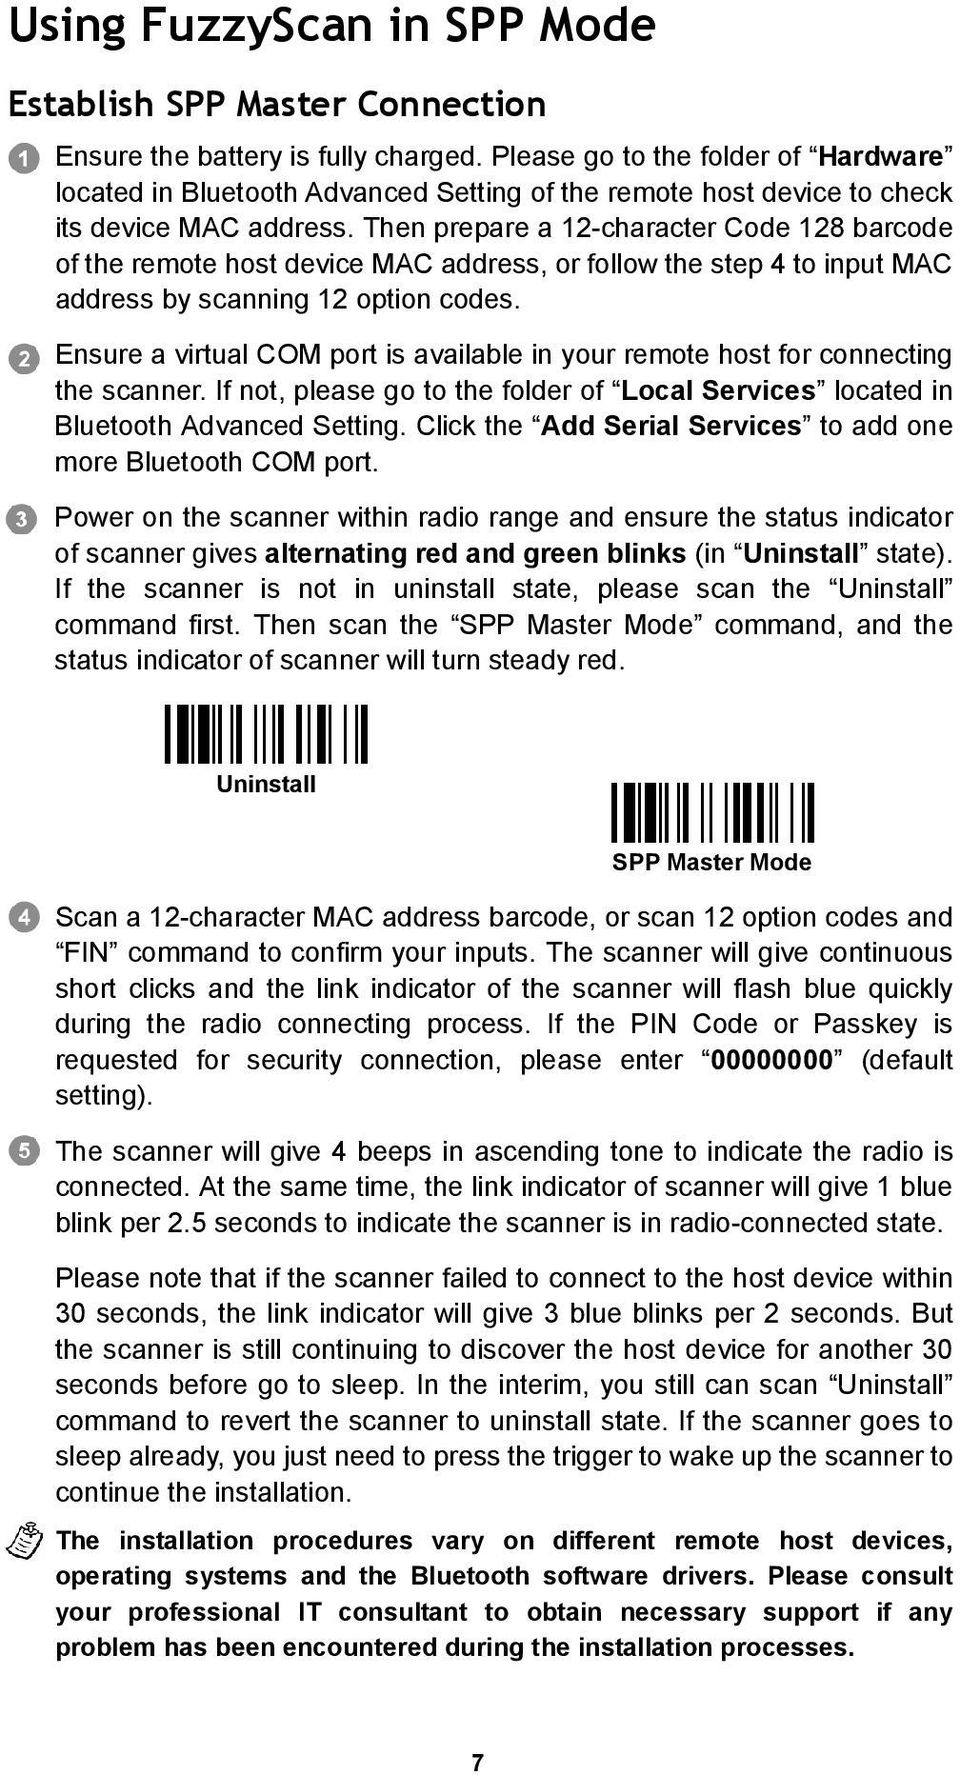 Then prepare a 12-character Code 128 barcode of the remote host device MAC address, or follow the step 4 to input MAC address by scanning 12 option codes.